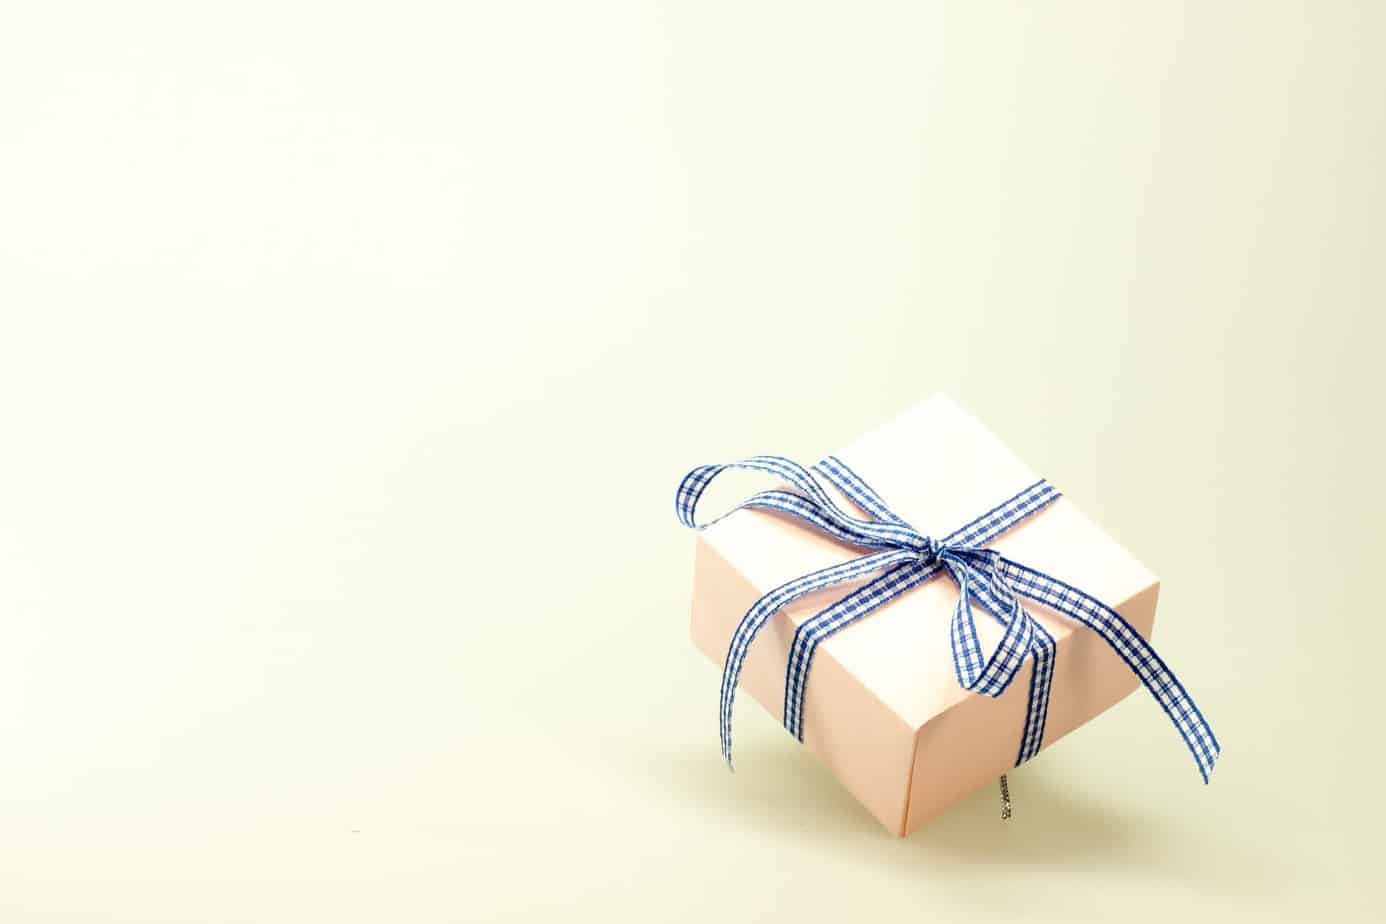 Everything You Want To Know About The Most Useful Interesting Wedding Favors For Your Big Day (2021)